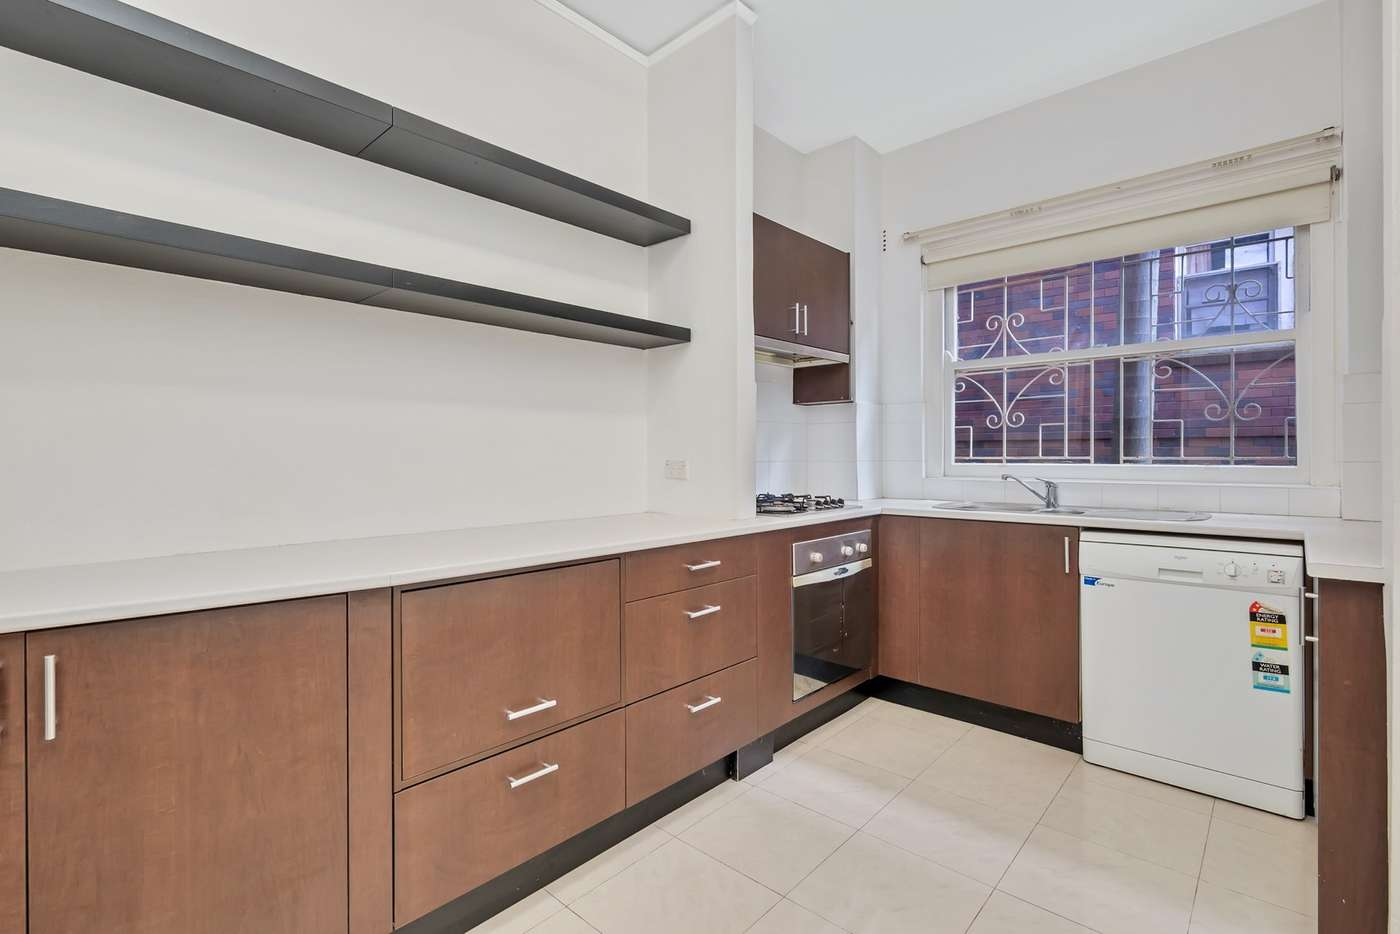 Main view of Homely apartment listing, 3/326 Edgecliff Road, Woollahra NSW 2025